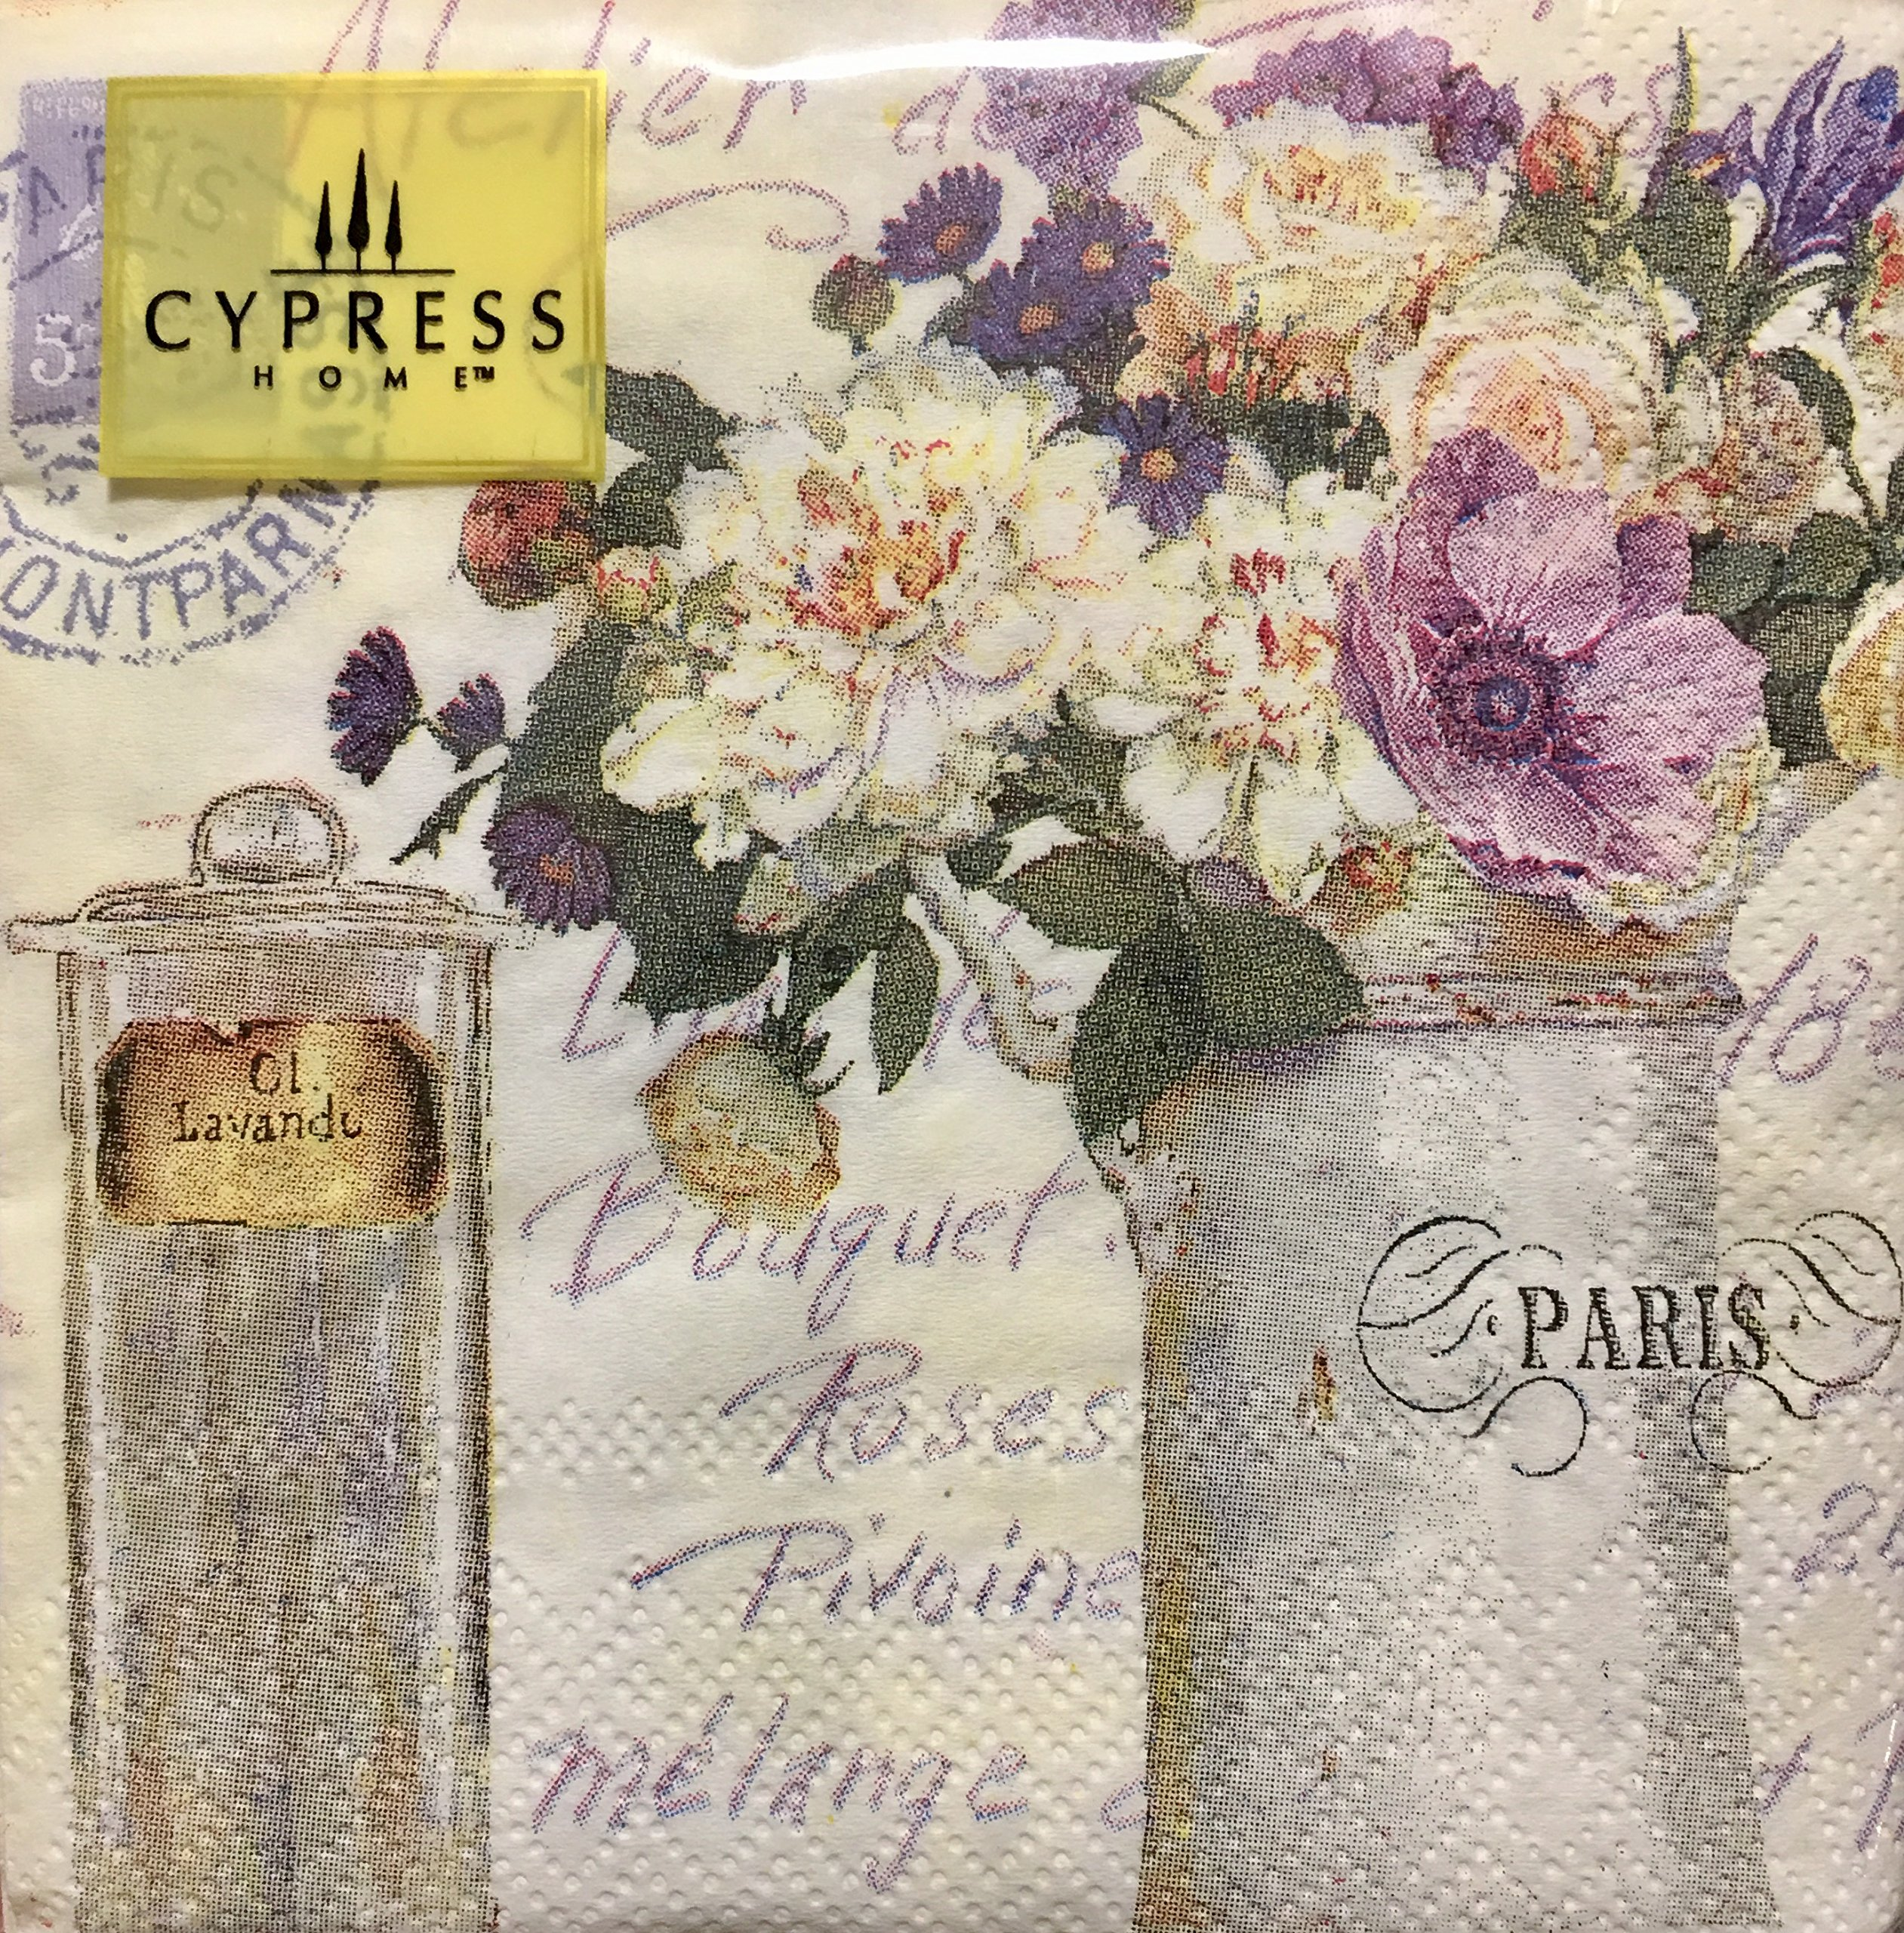 Cypress Home Cocktail Beverage Paper Napkins - Purple & White Flowers with Lavender Oil, 40 ct